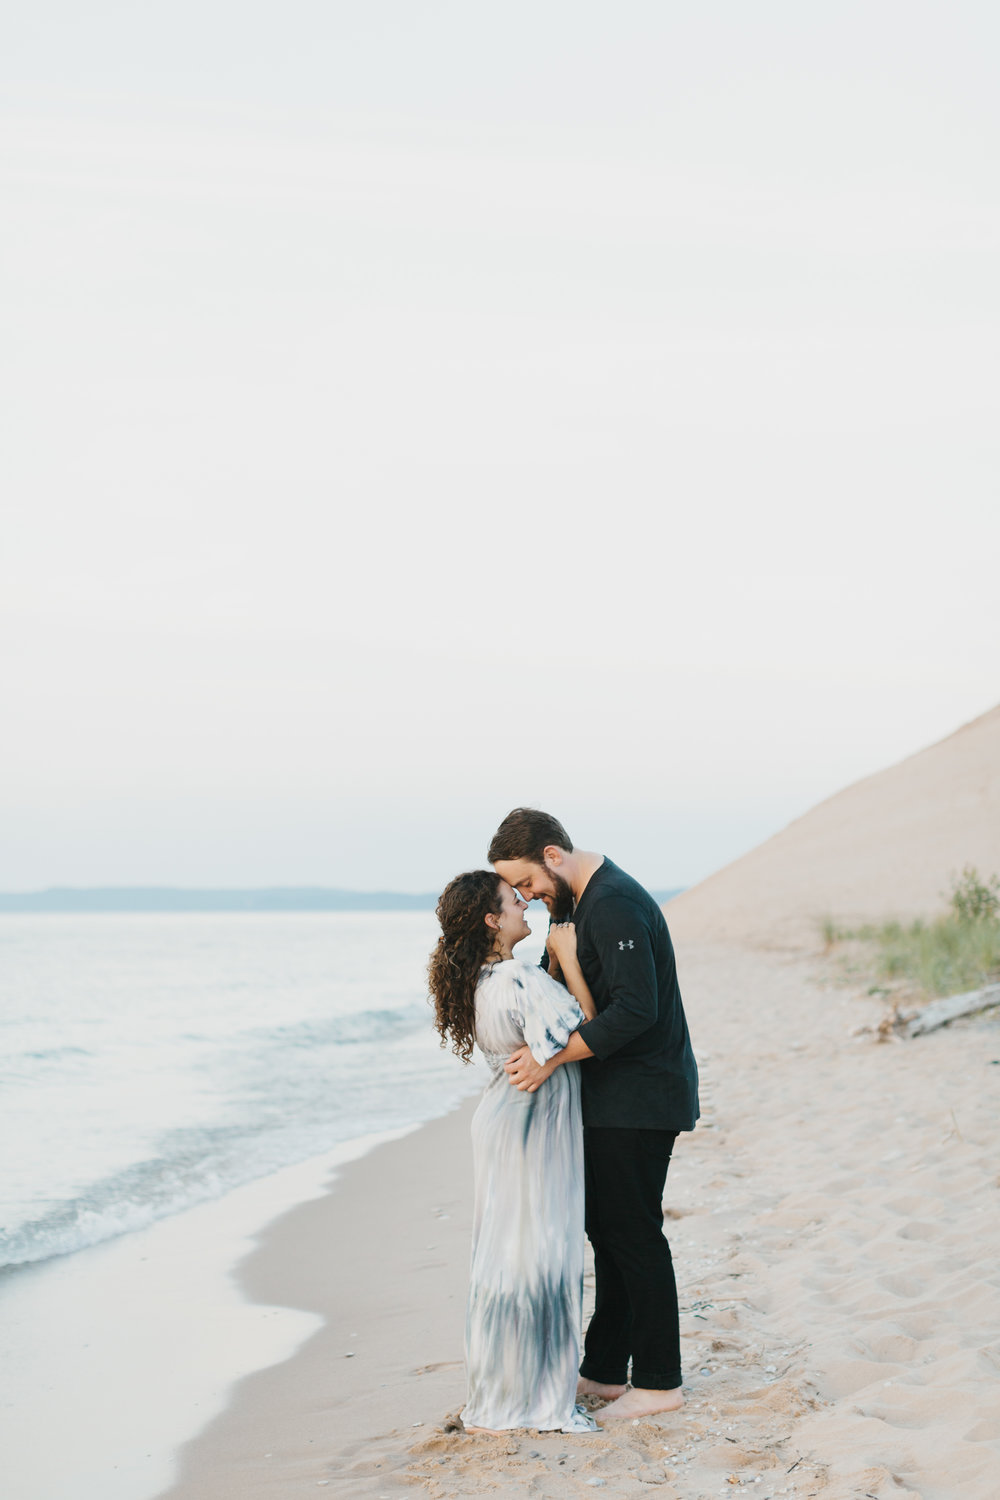 Northern Michigan Sleeping Bear Dunes Wedding Engagement Photographer Mae Stier-037.jpg